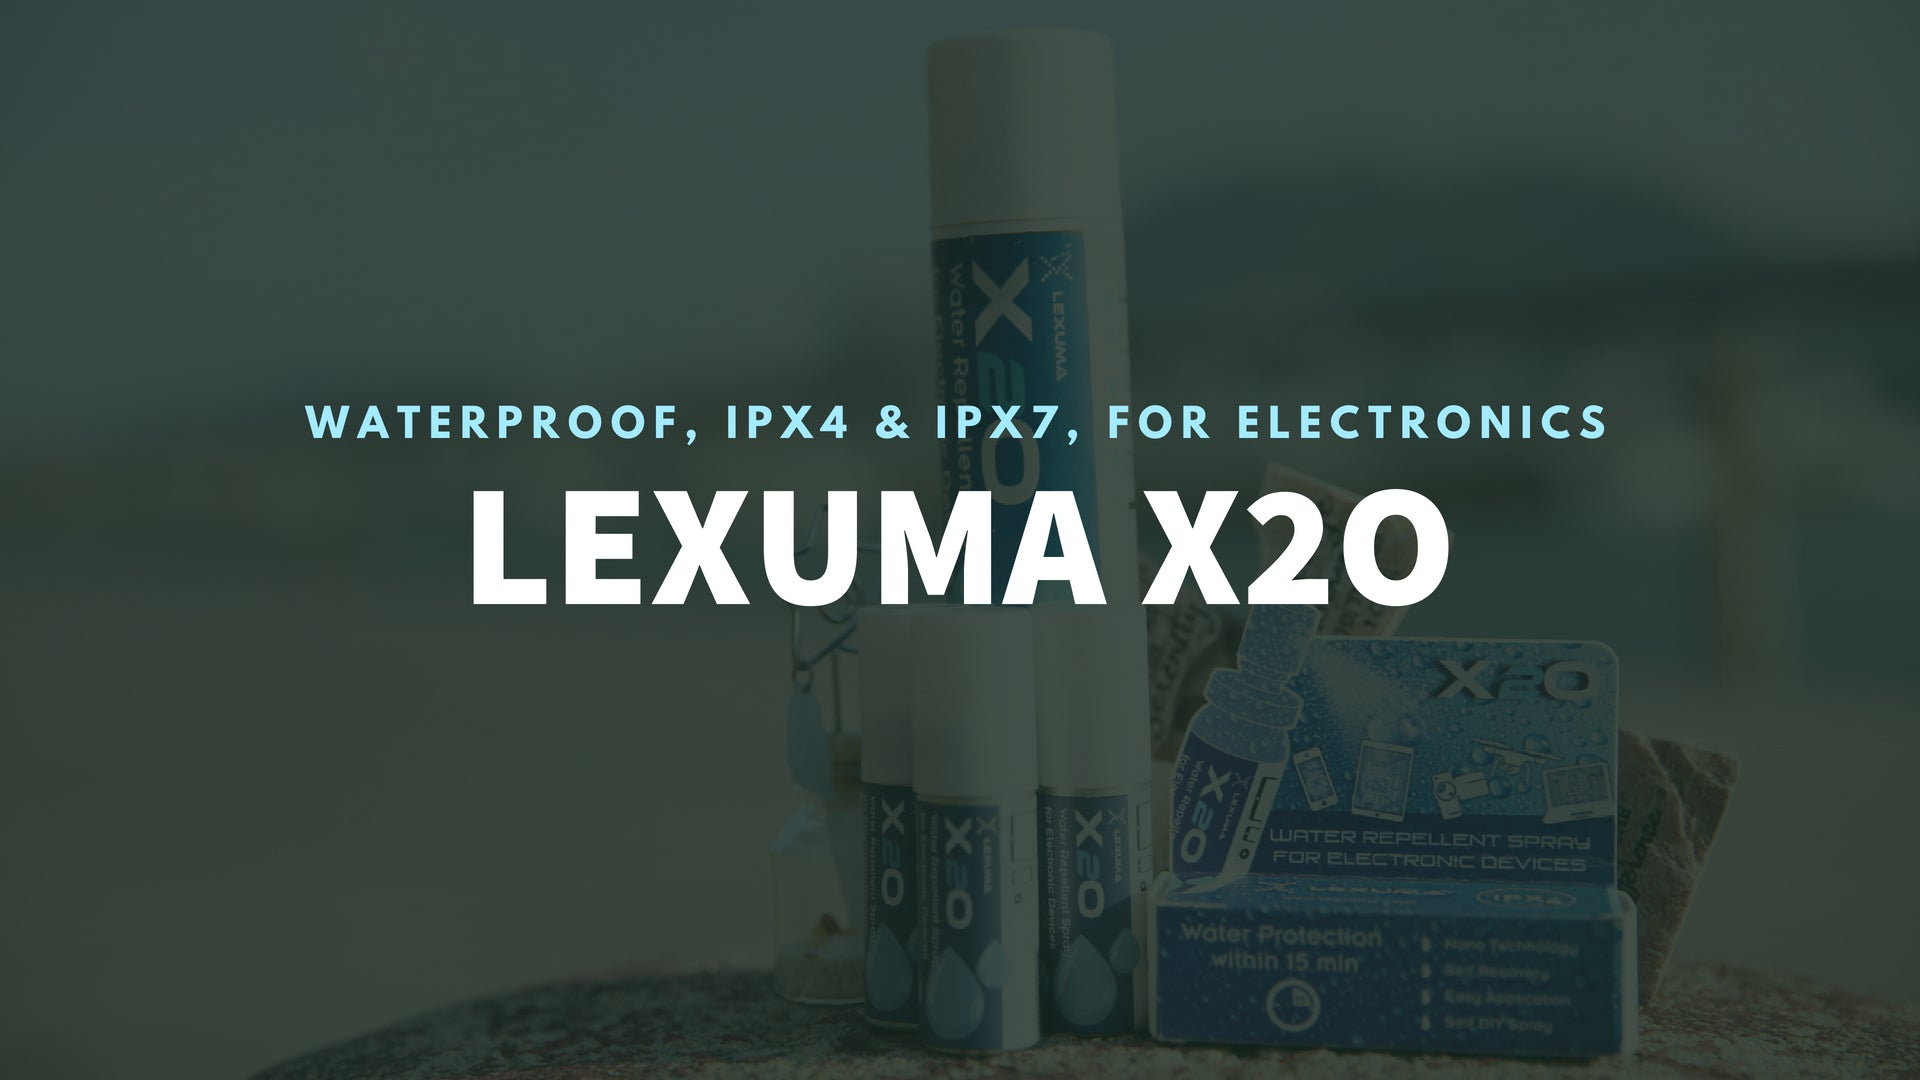 Lexuma 辣數碼防水噴霧 XWP-1010 X2O Water Repellent Spray with IPX4 and IPX7 water protection conformal protective coating electronics pcb waterproofing circuit board sealer gel conformal clear coat for electronics moisture proof pcb waterproof nano spray for electronics devices mobile phone epoxy conformal coating sealant spray moisture proof Machinery Protection Banner